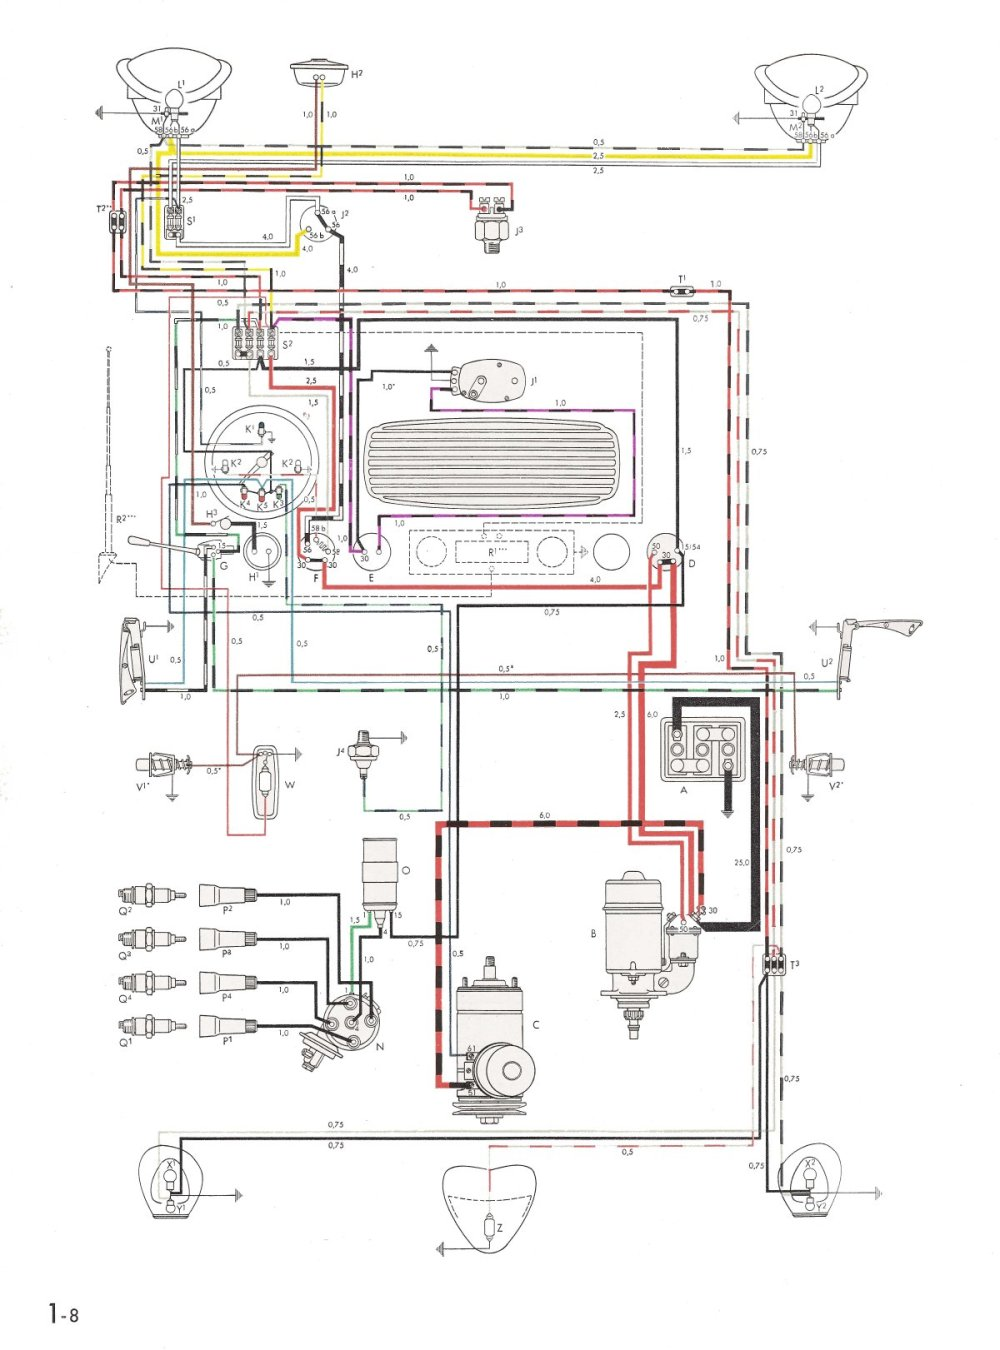 medium resolution of 70 vw wiring diagram wiring diagram dat 70 vw wiring diagram